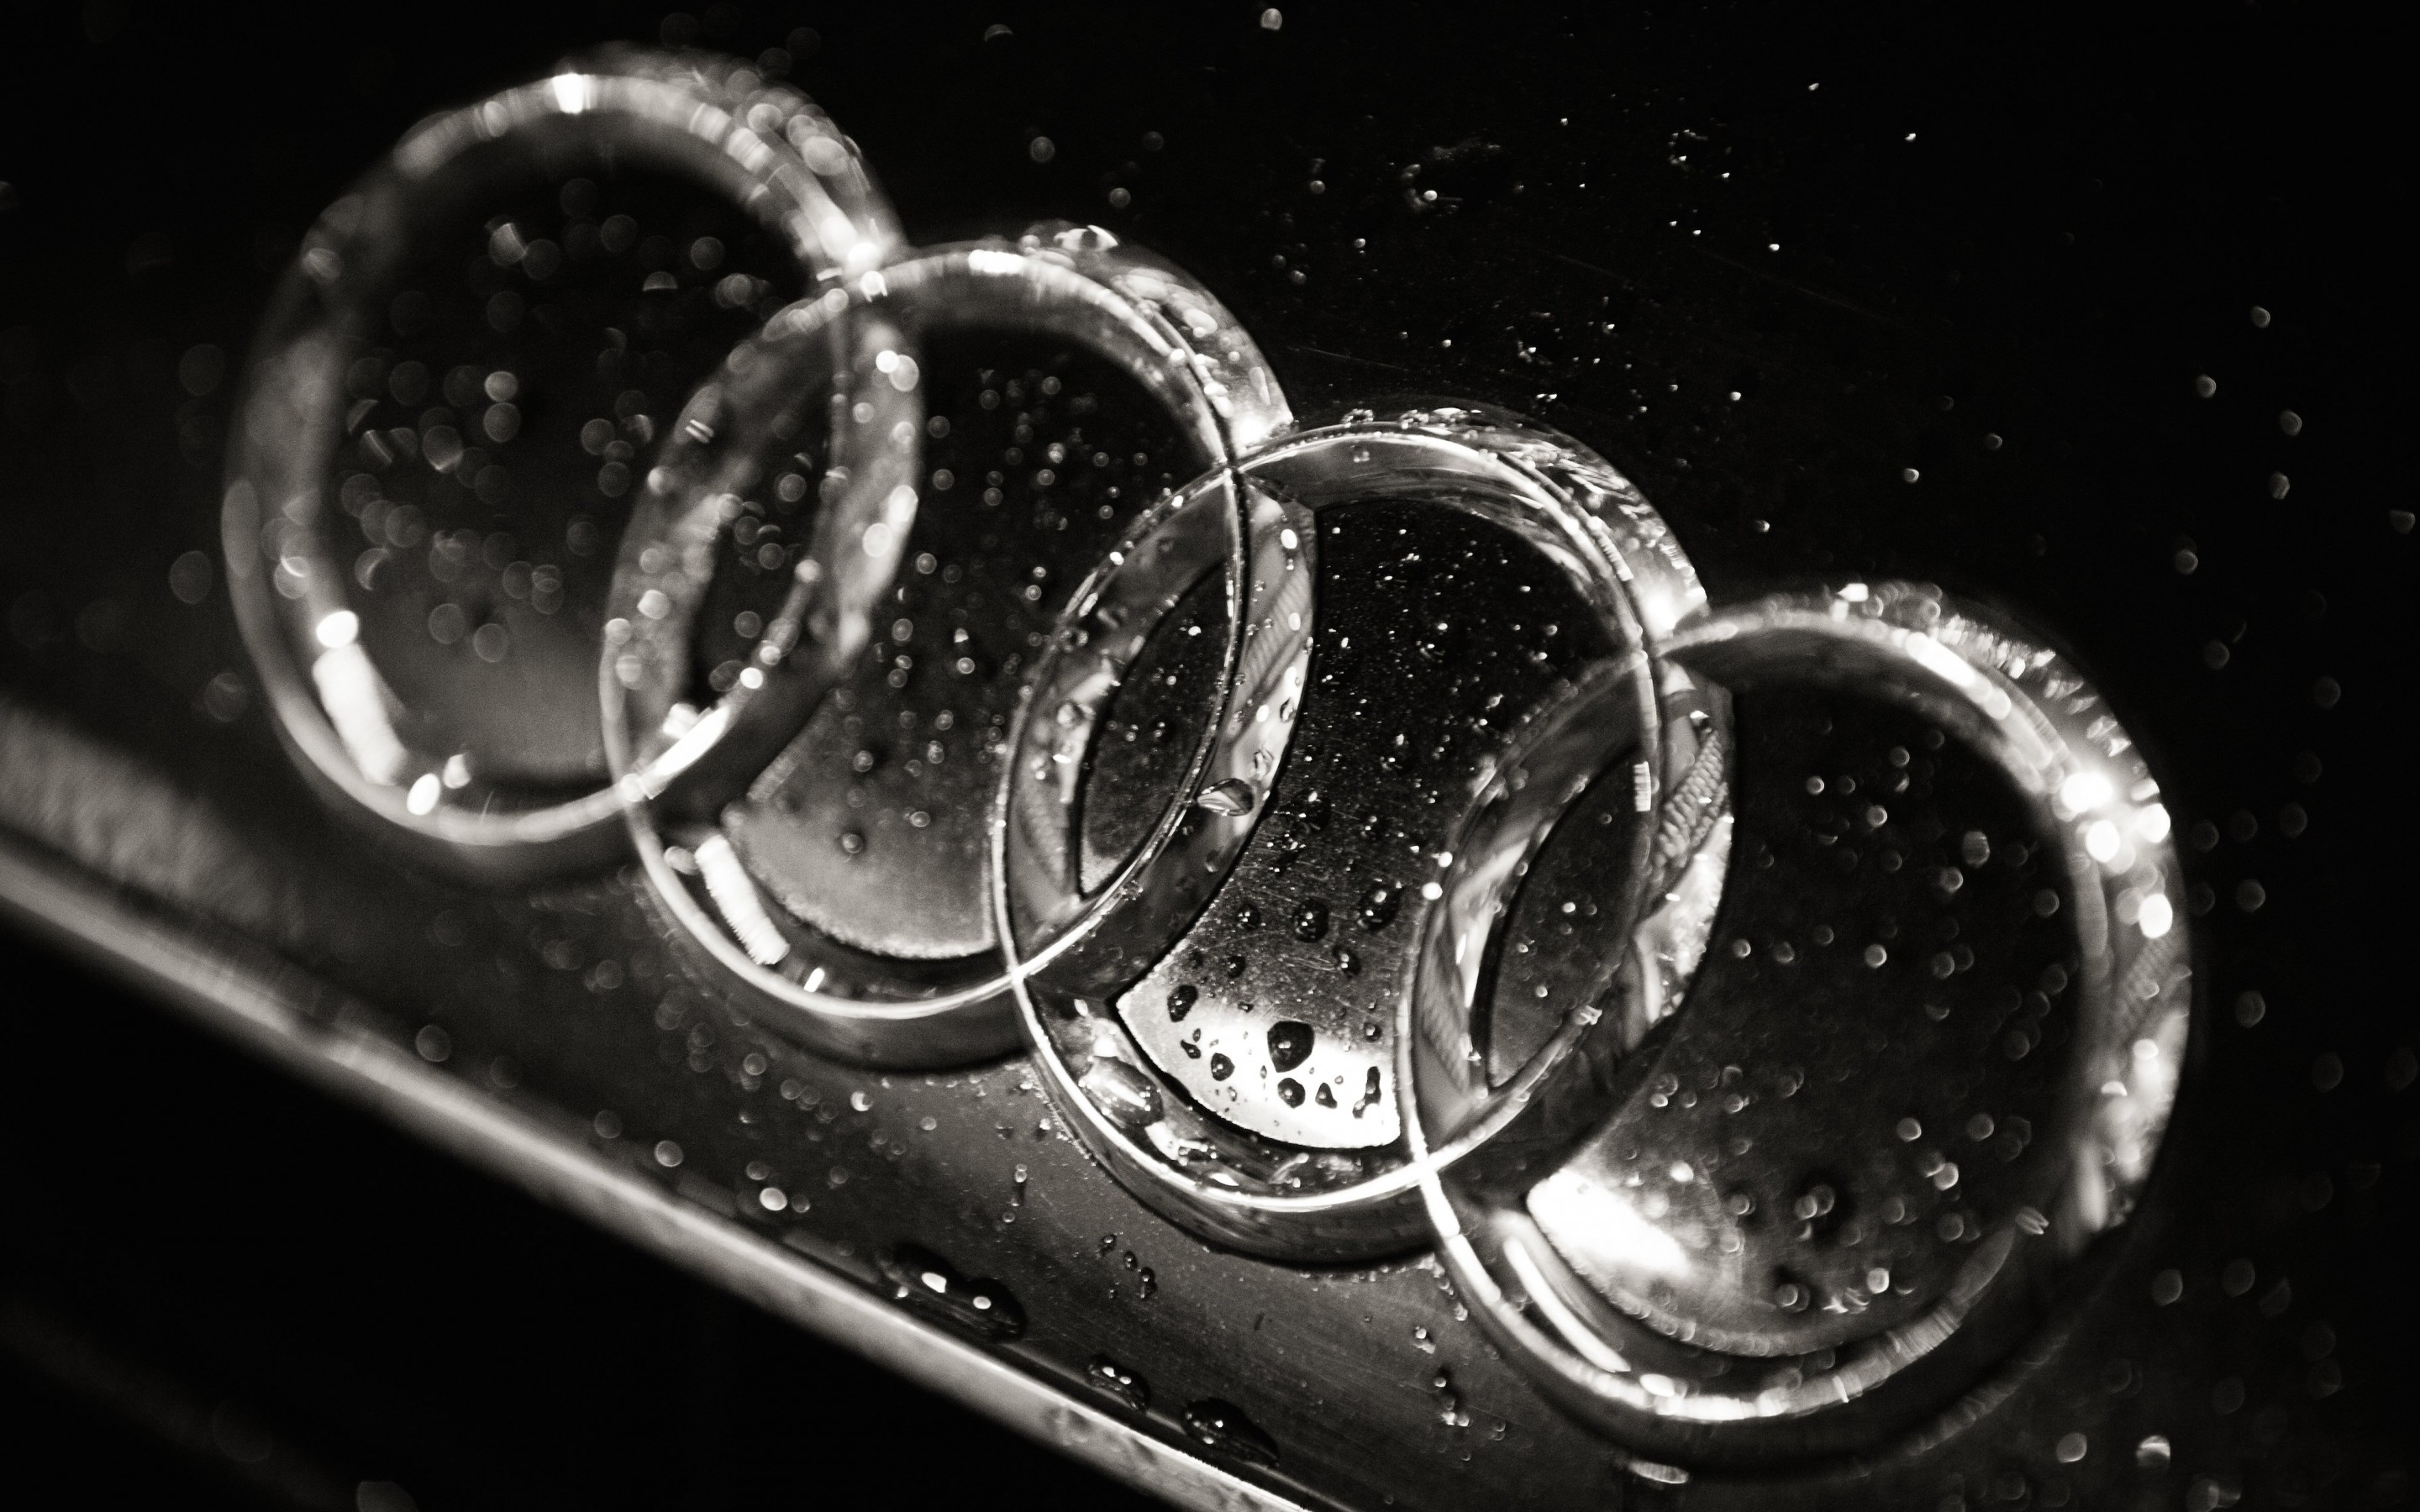 Audi Logo in Black & White Wallpaper for Desktop 2880x1800